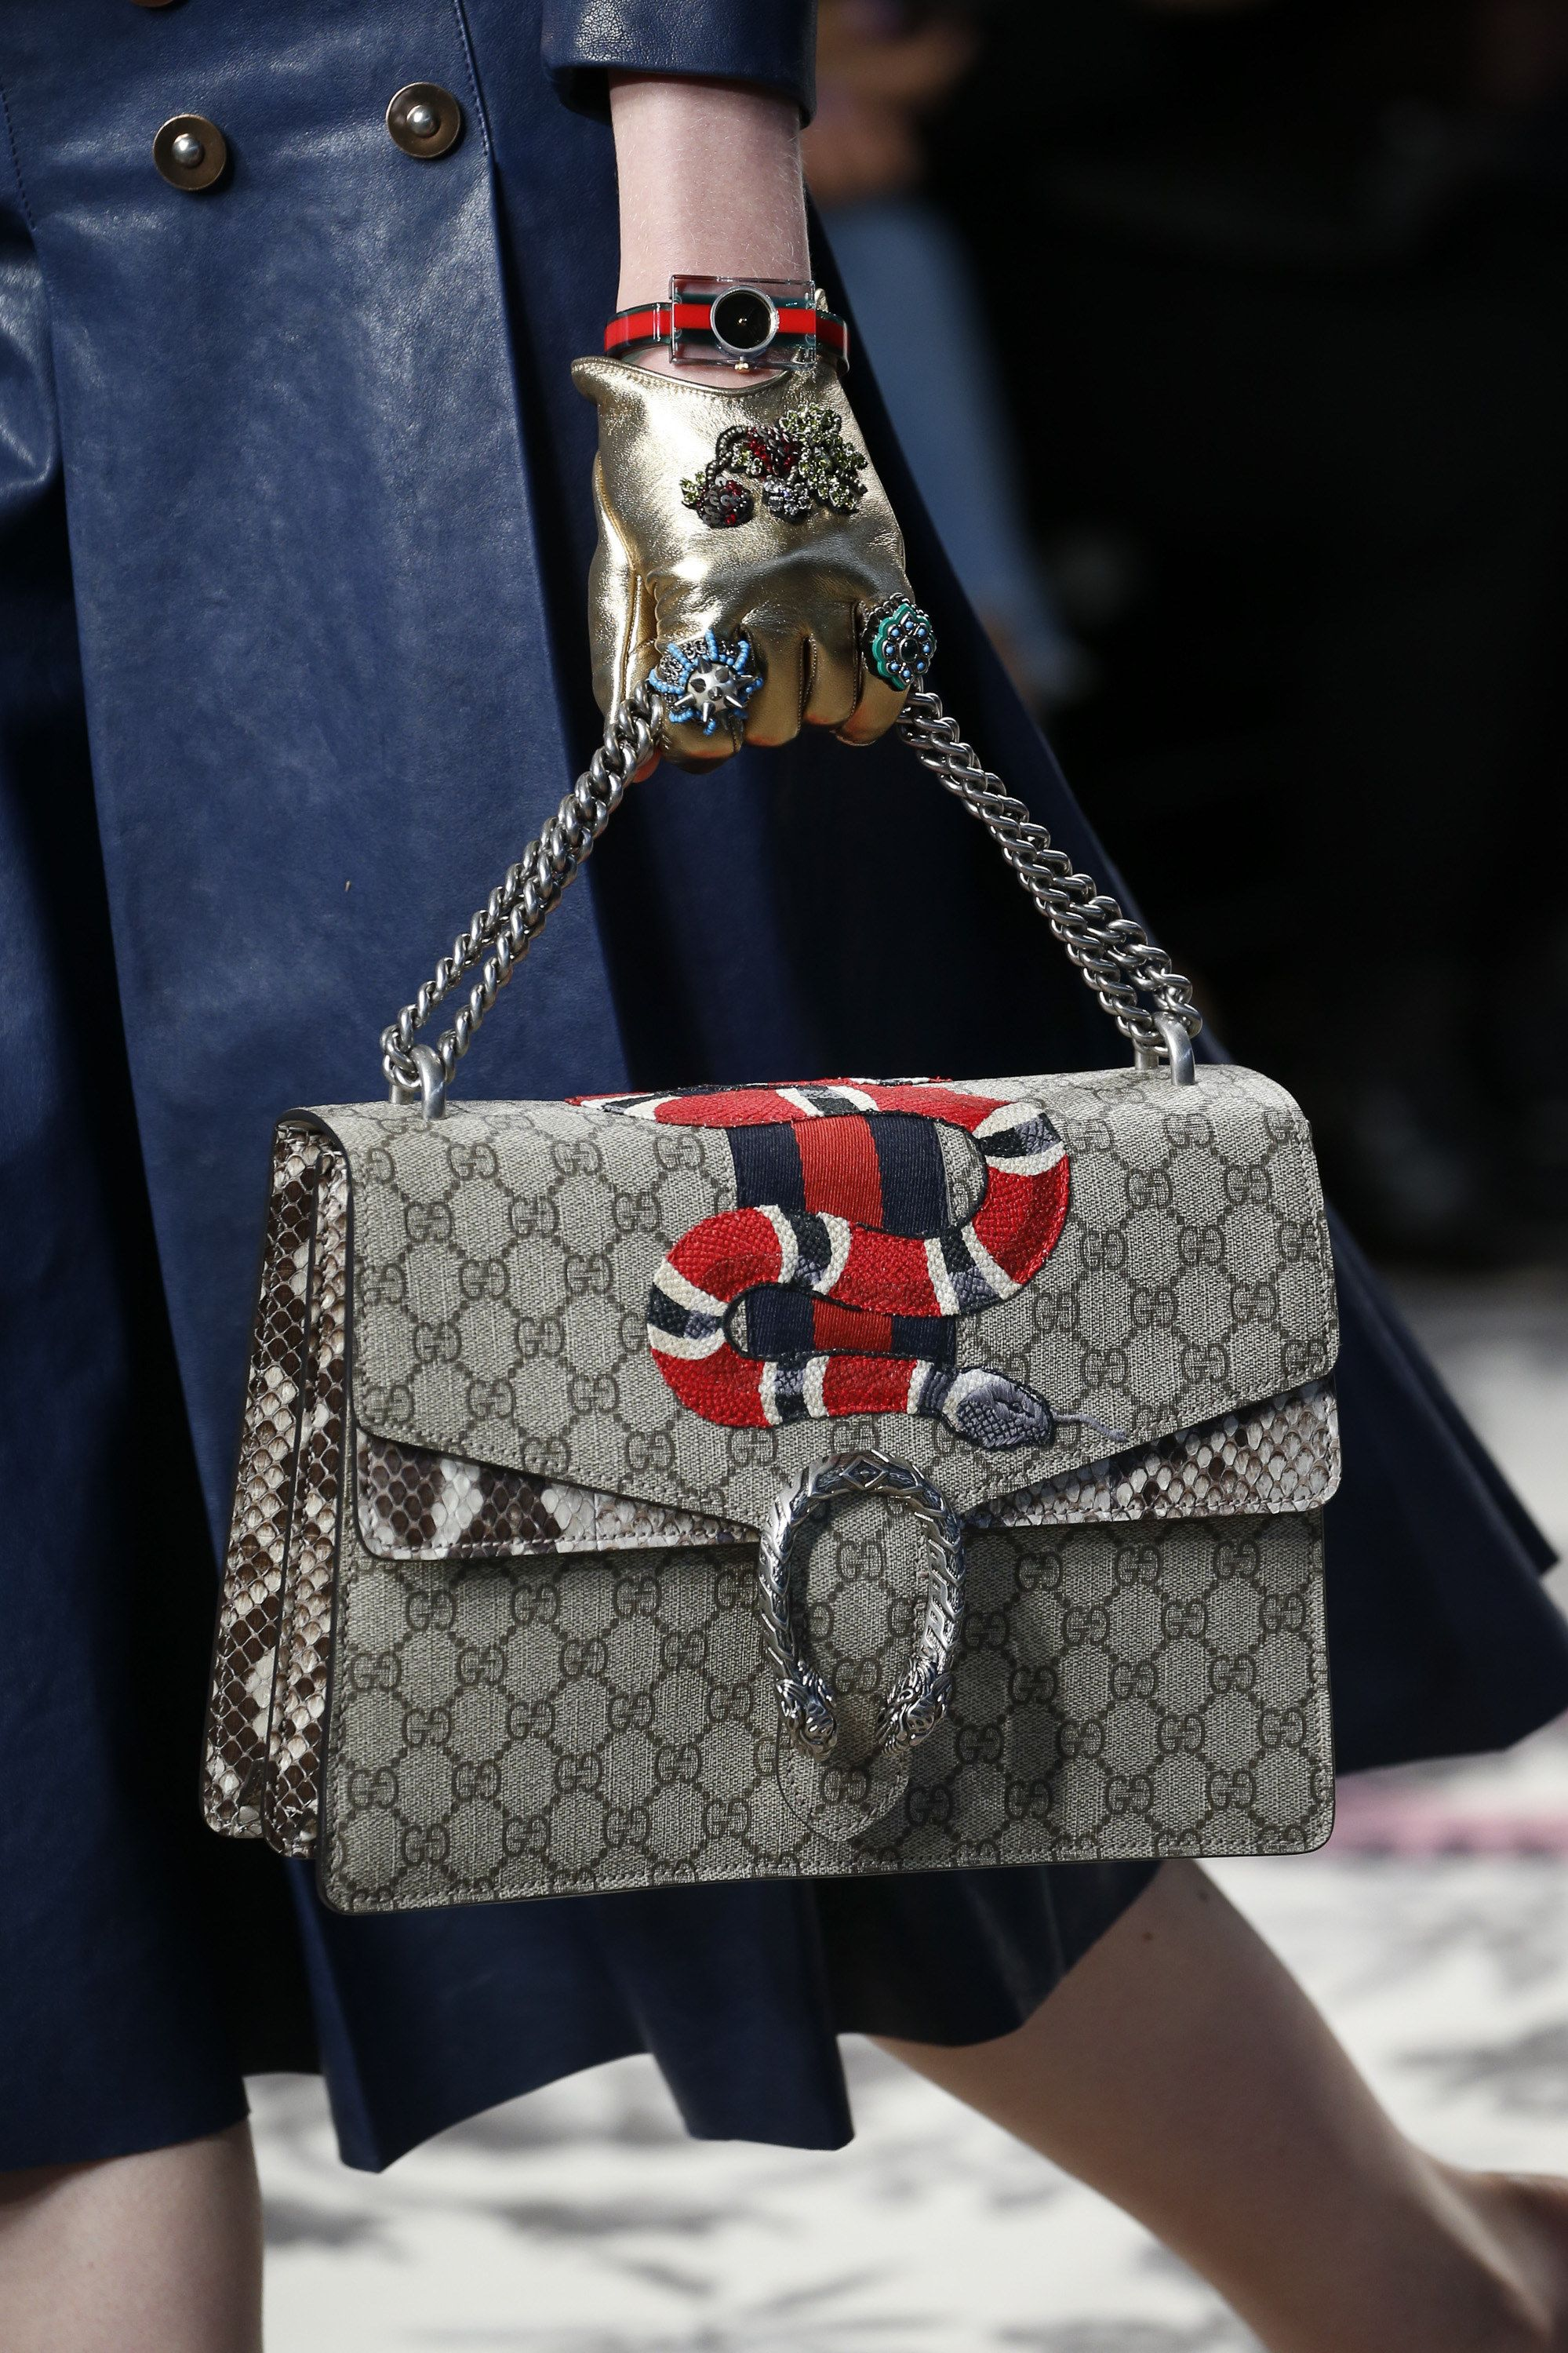 cb8bf8da0 Gucci Spring 2016 Ready-to-Wear Accessories Photos - Vogue Bolsos Gucci,  Ropa